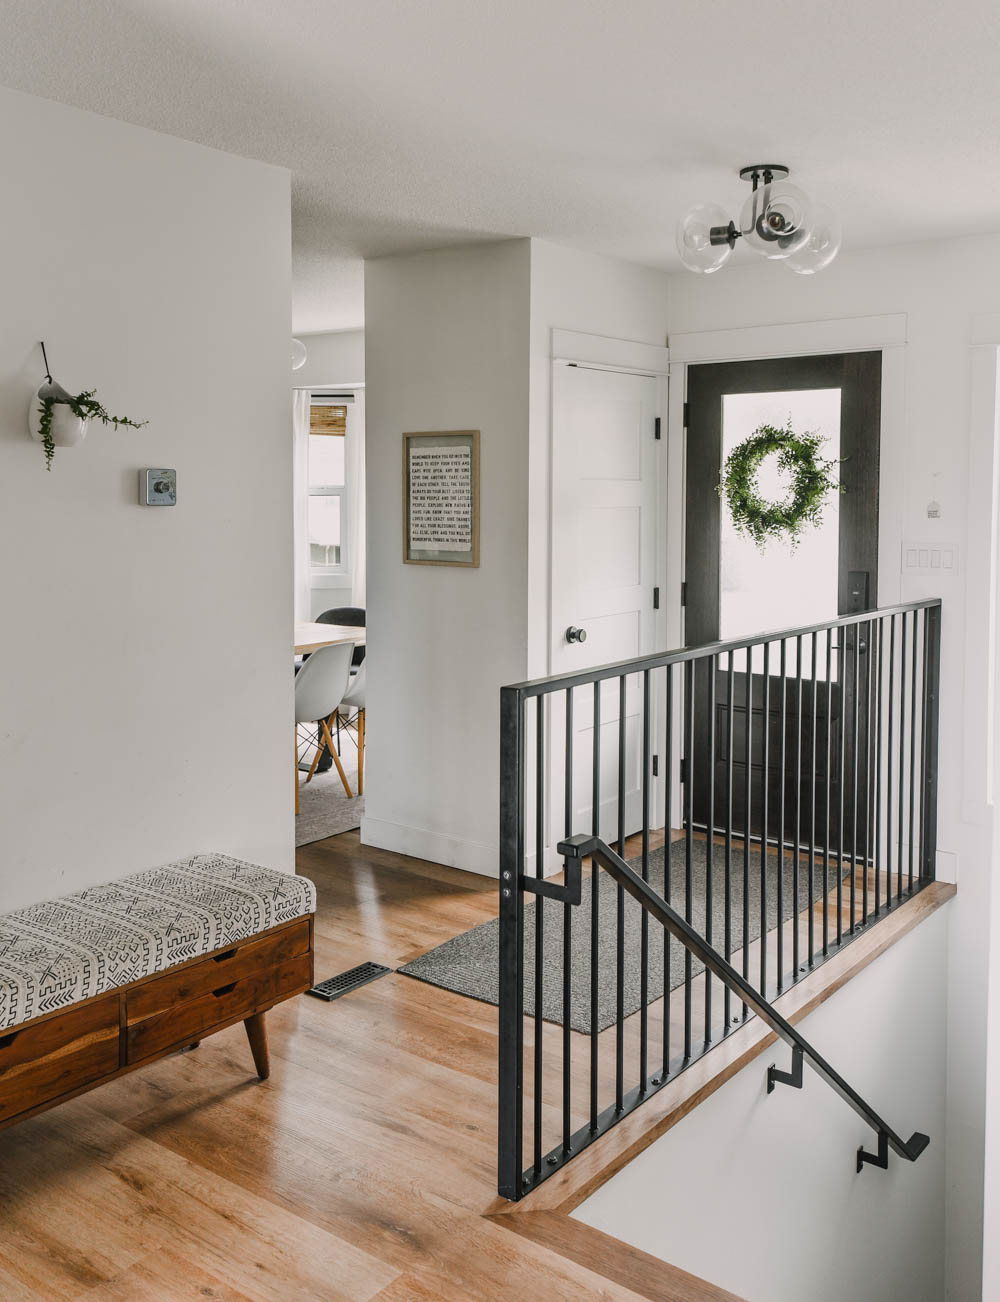 Bright, light entryway decor with modern accents